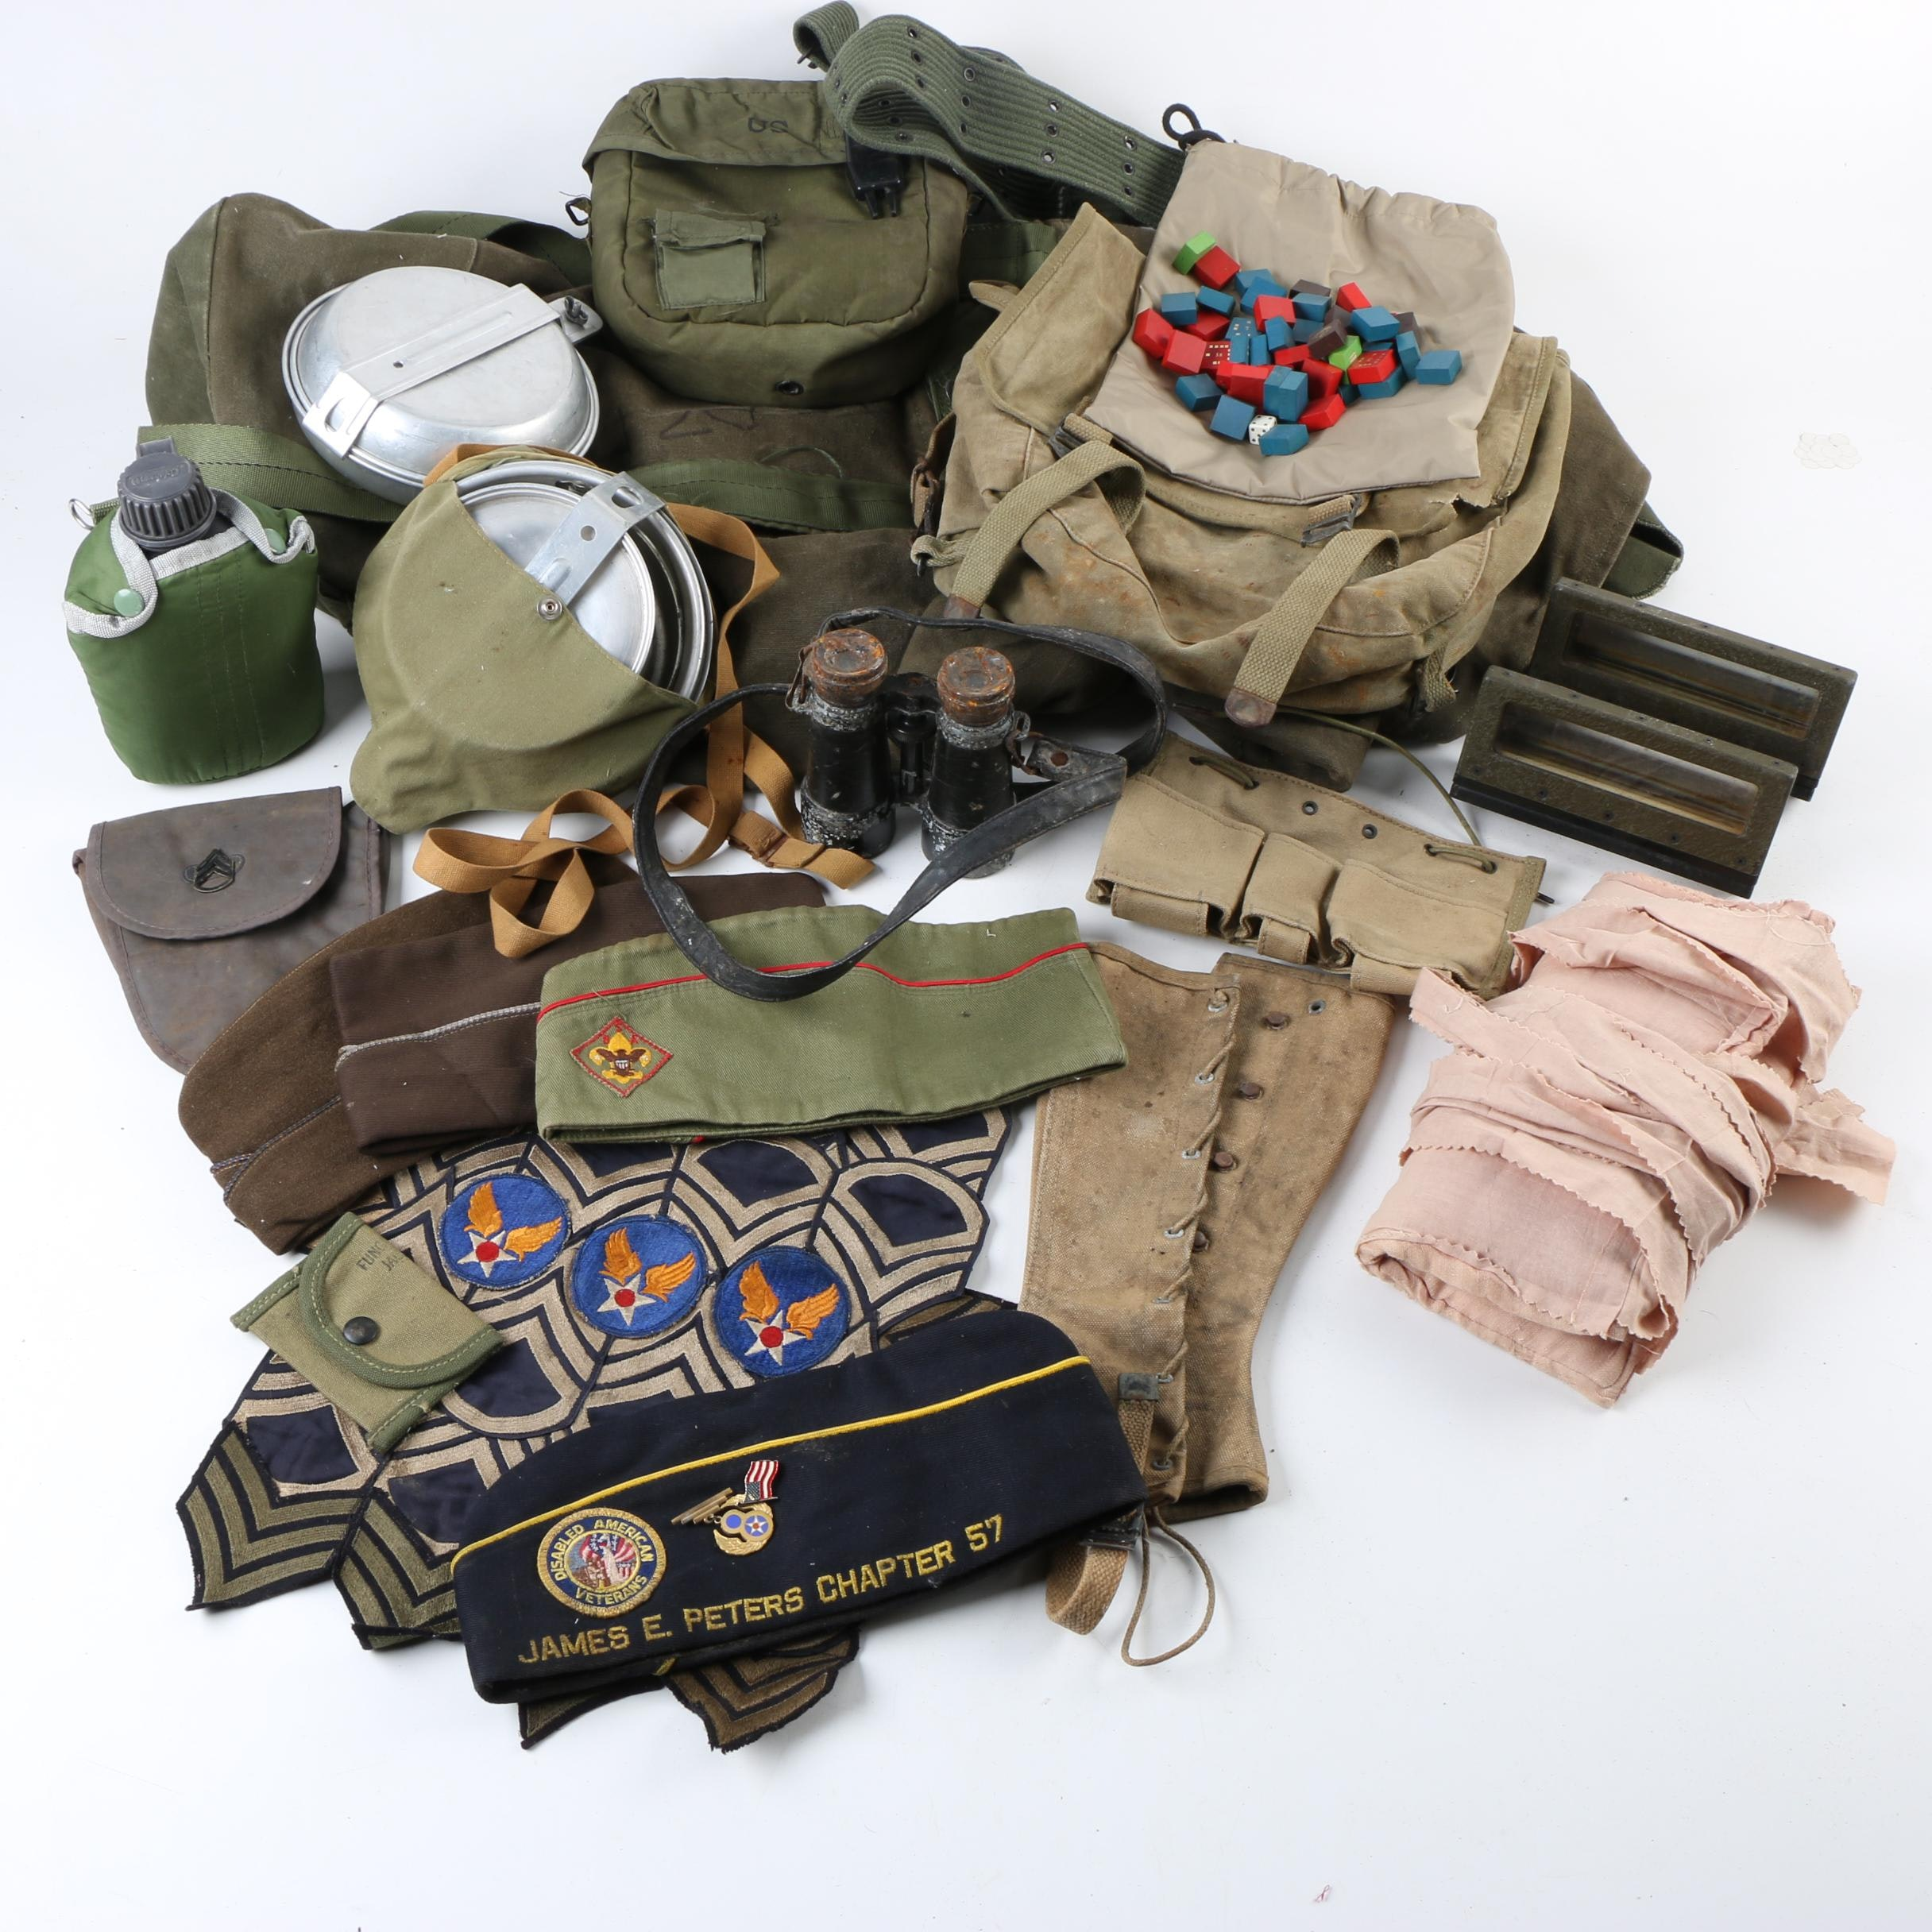 Military Equipment Including Binoculars, Periscope, Packs, and Hats